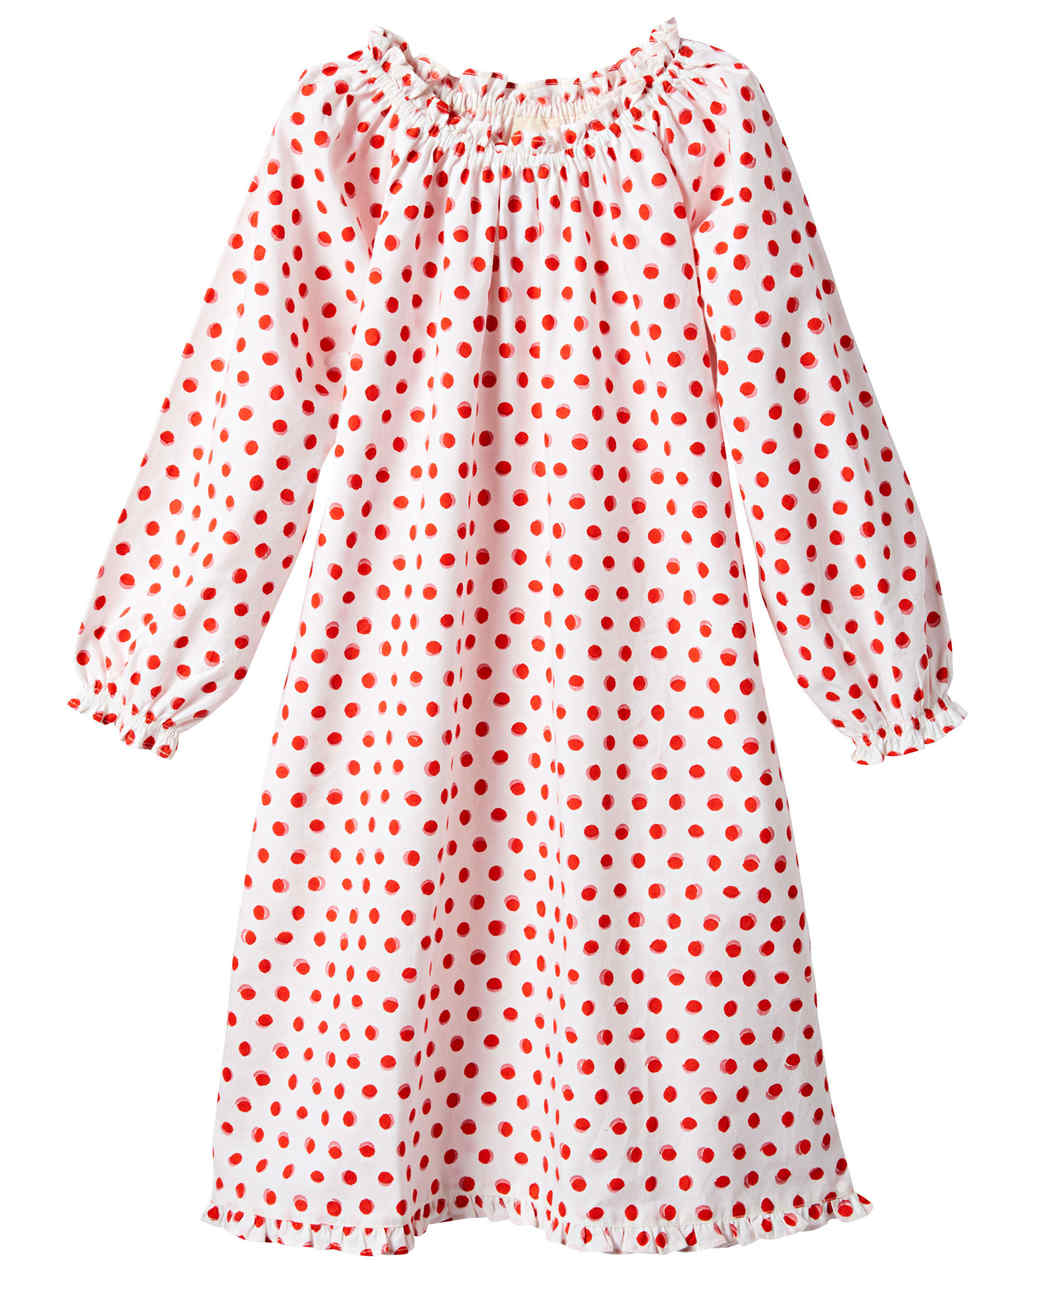 red polka dot nightgown